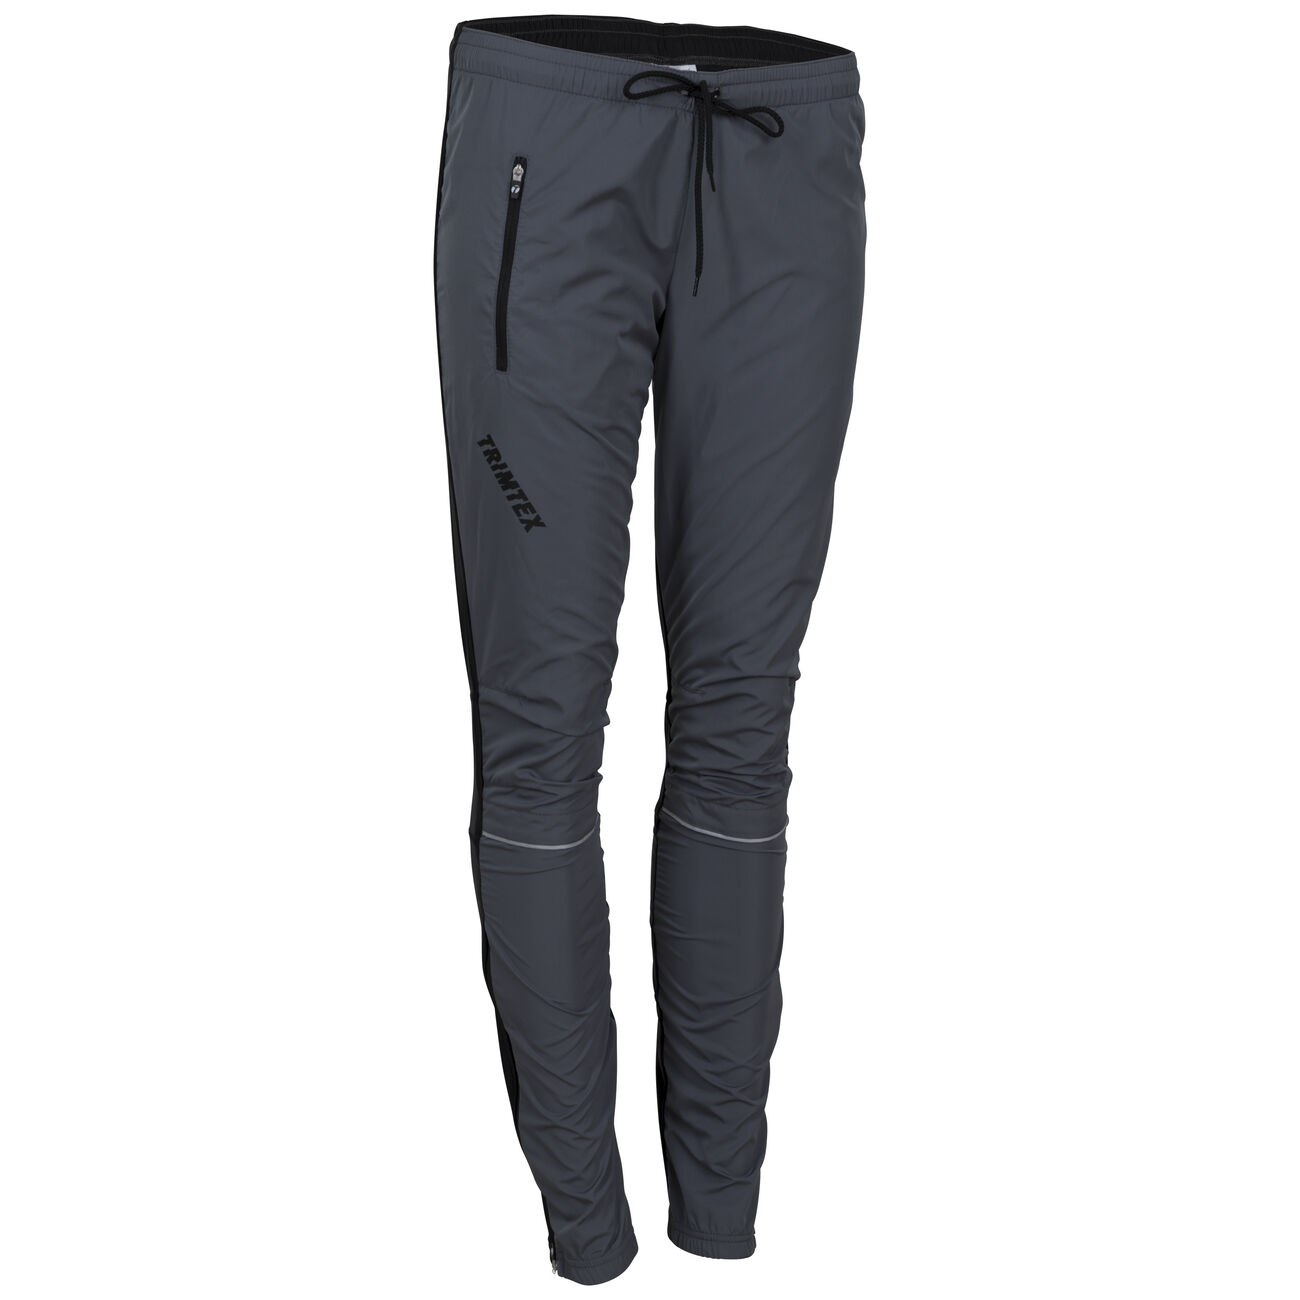 Trainer Re:Mind training pants women's